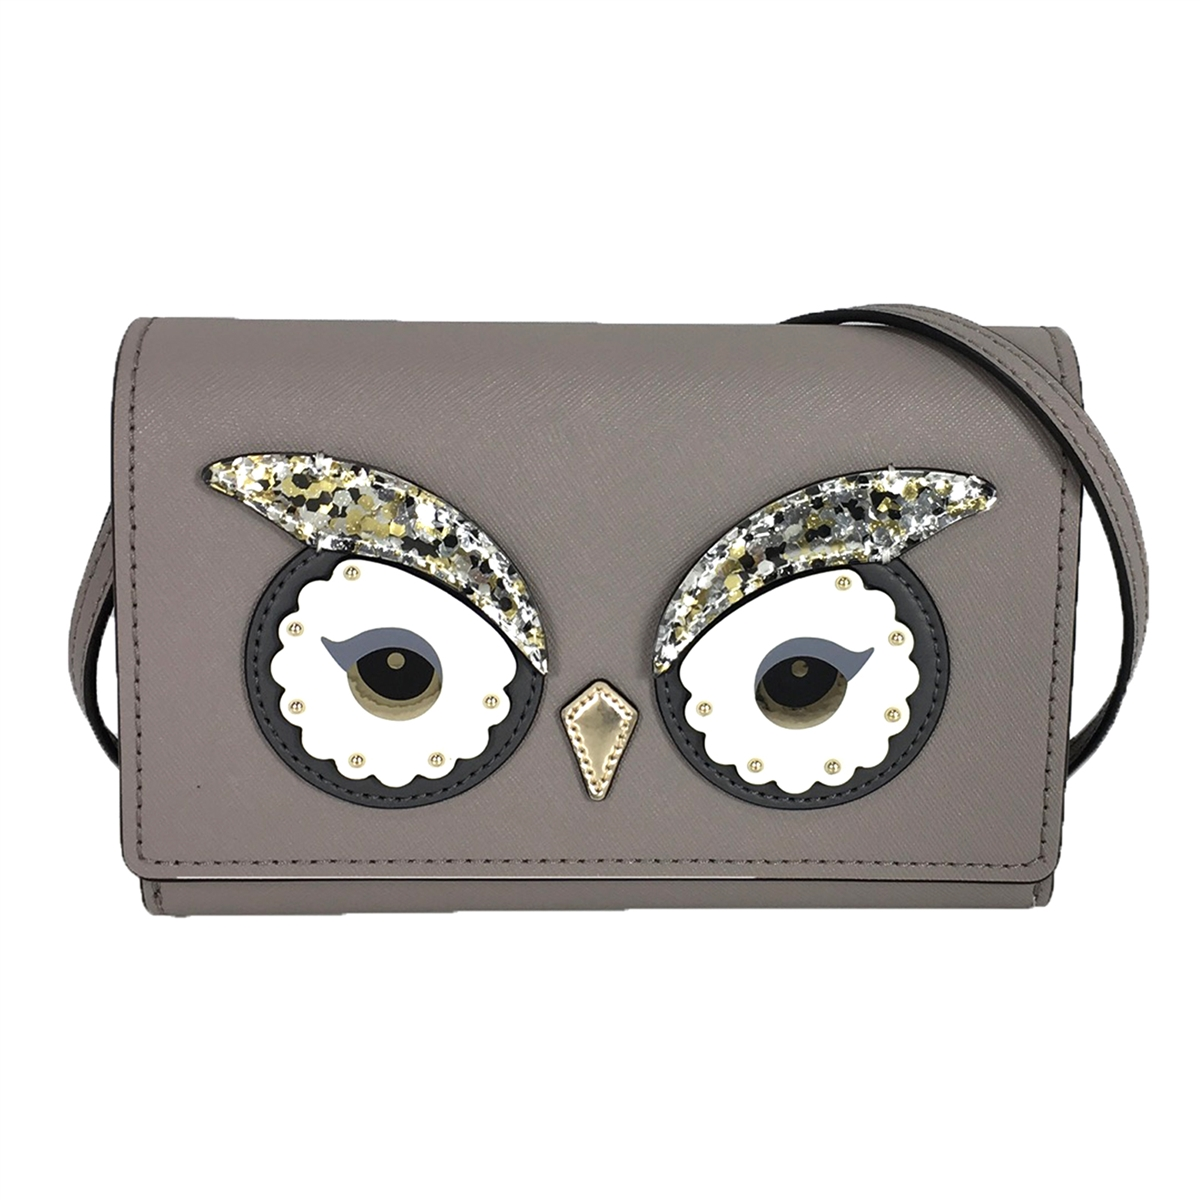 Kate Spade Owl Summer Saffiano Leather Clutch Crossbody Bag Cityscape Grey Taupe